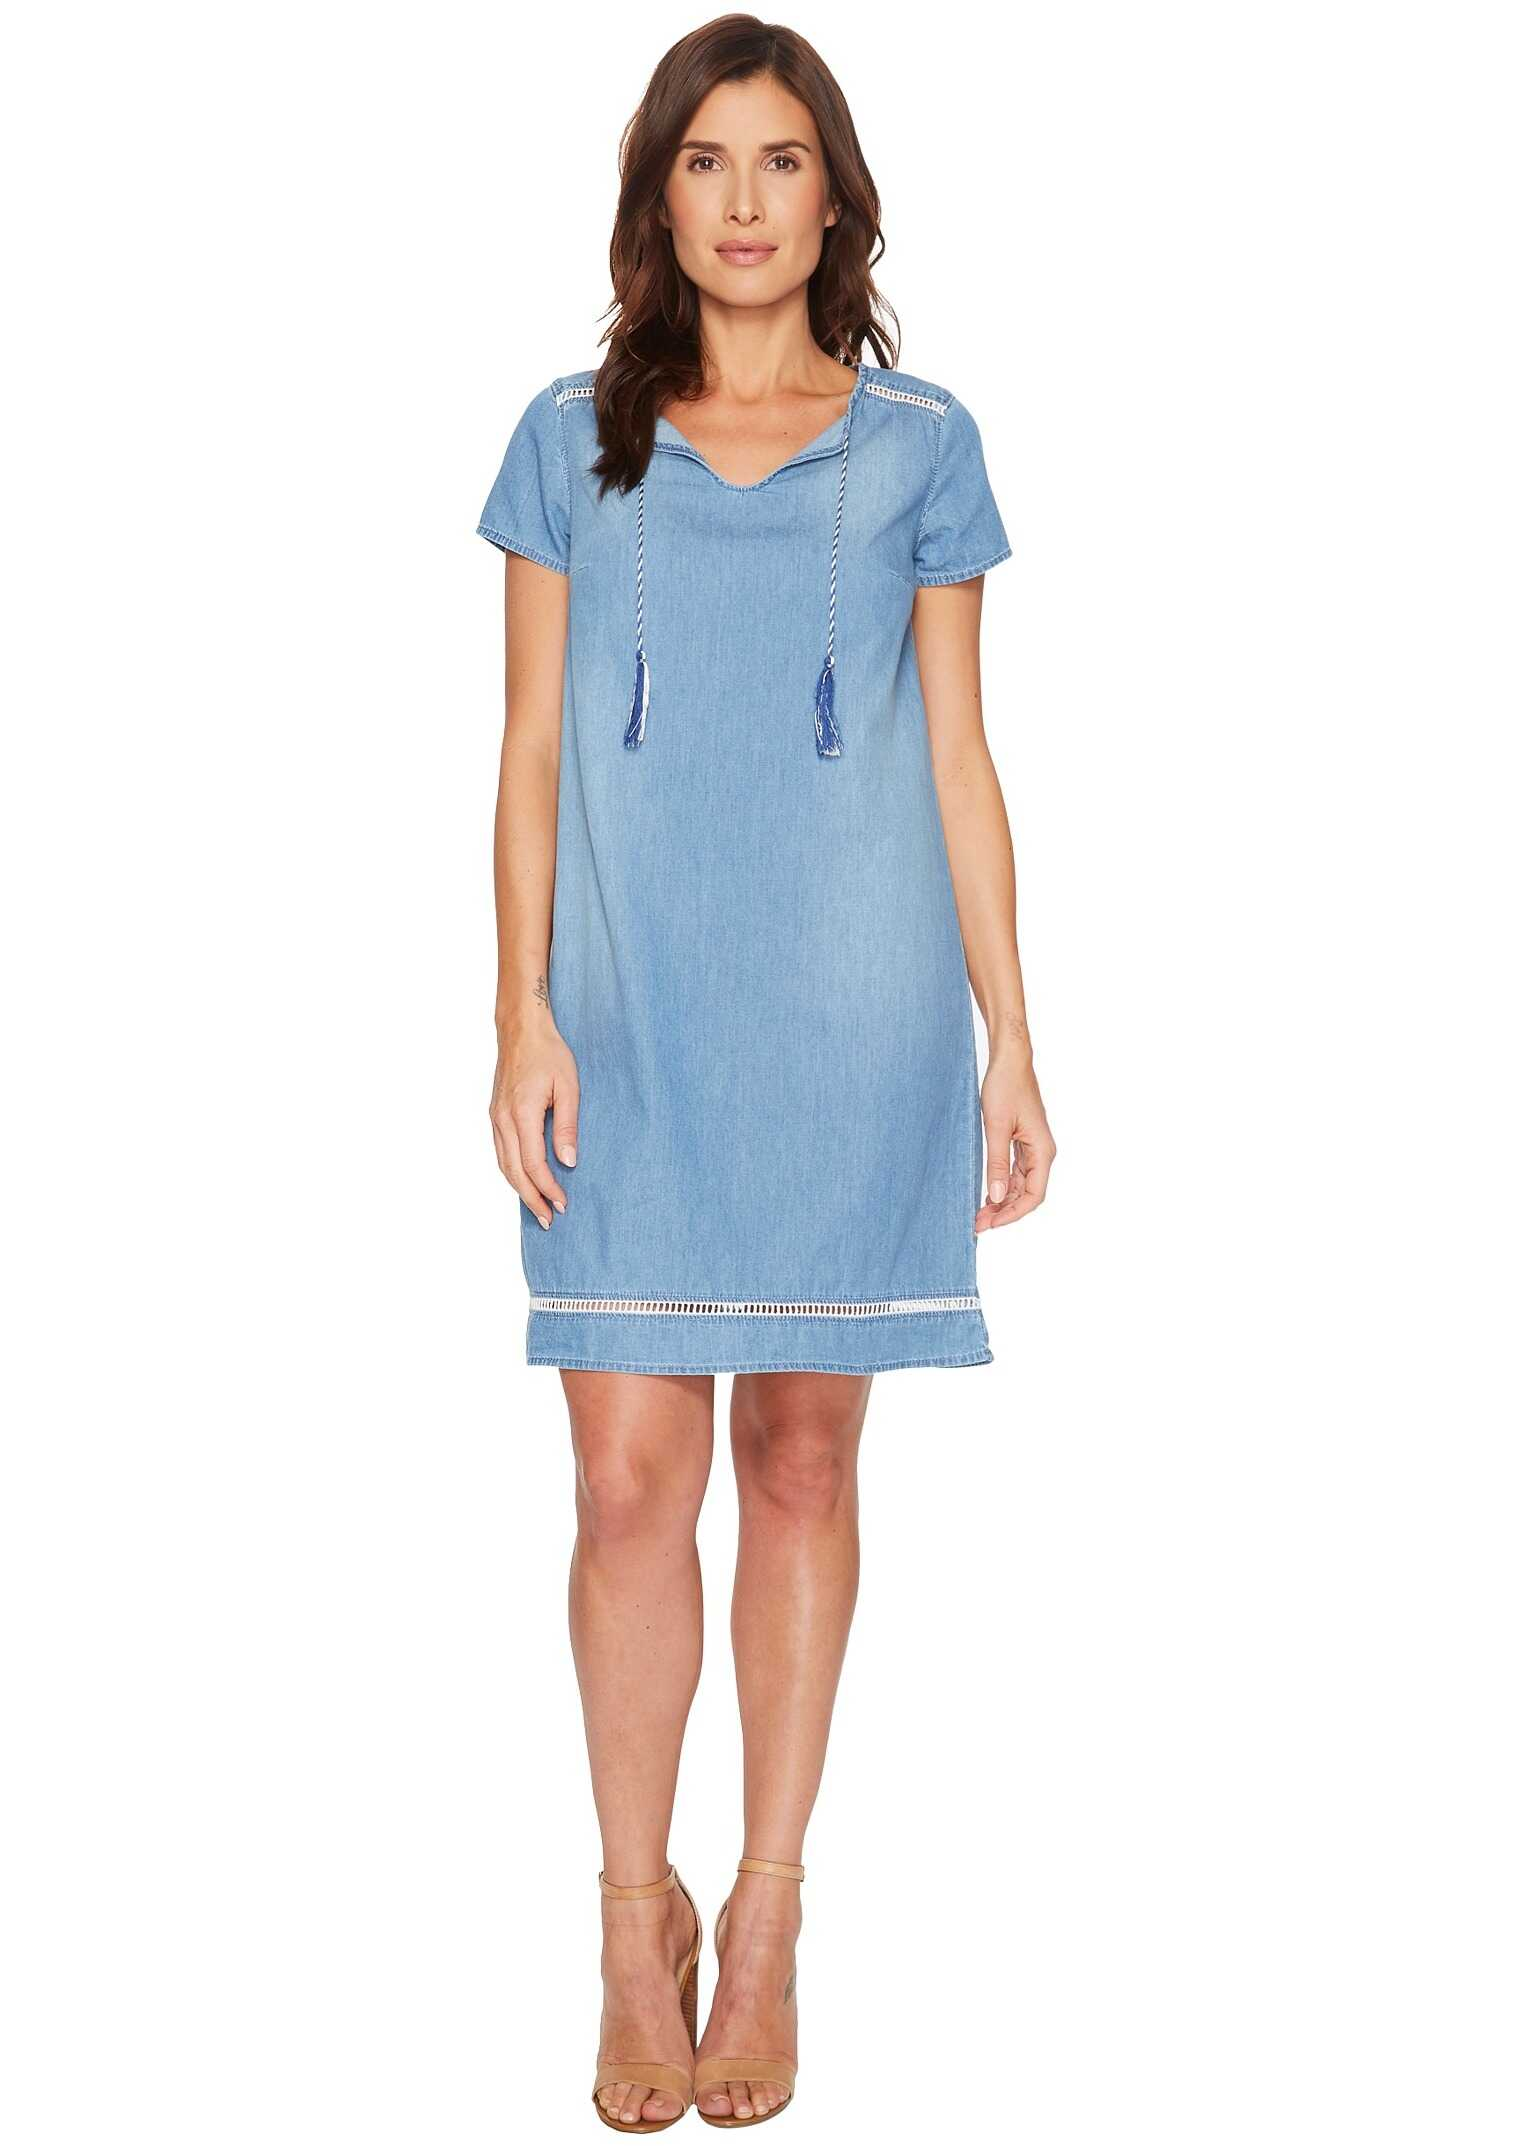 U.S. POLO ASSN. Short Sleeve Denim Tassel Dress Atlas